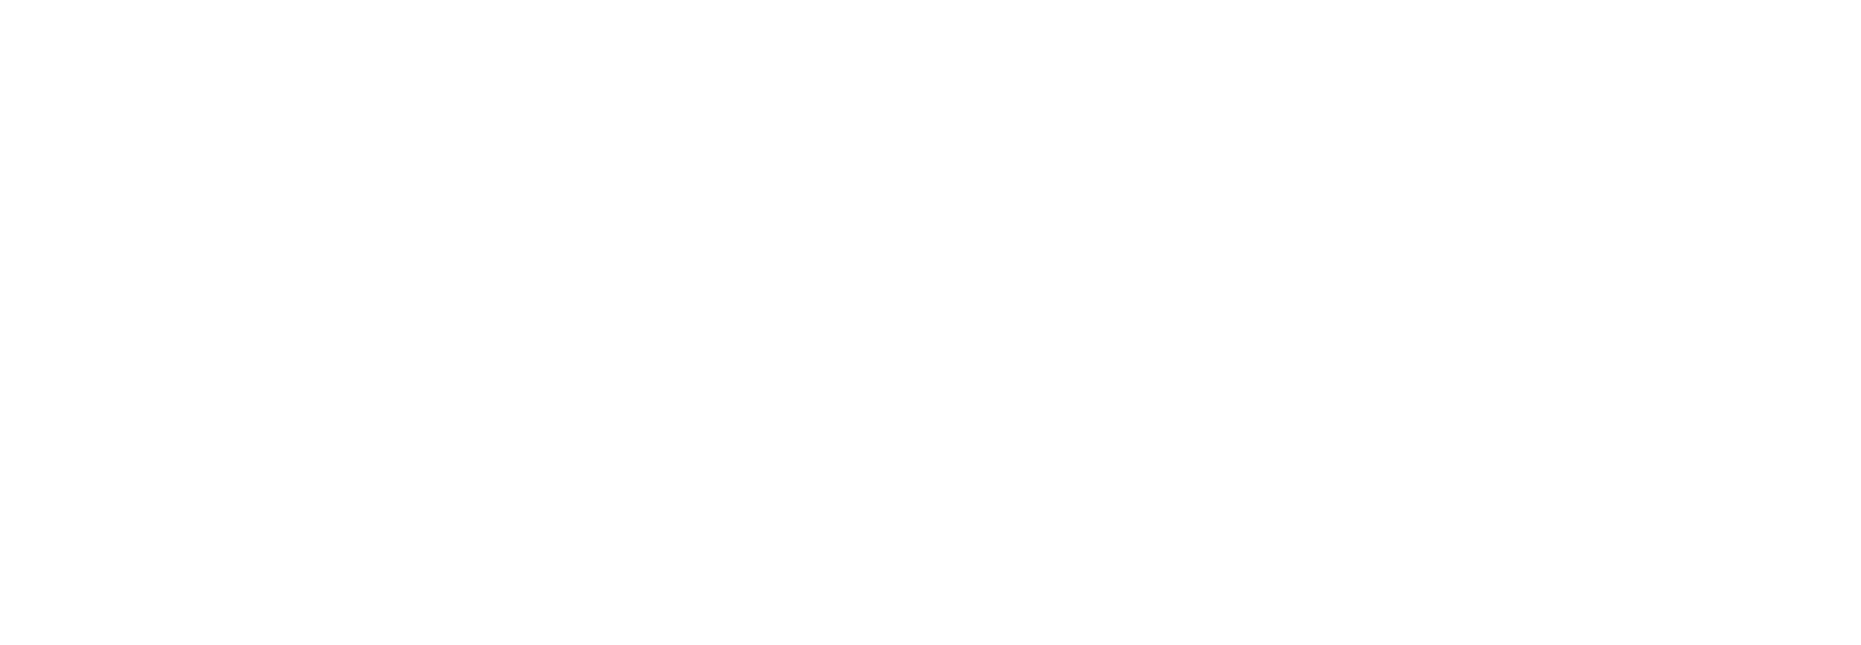 MISSION_2.png